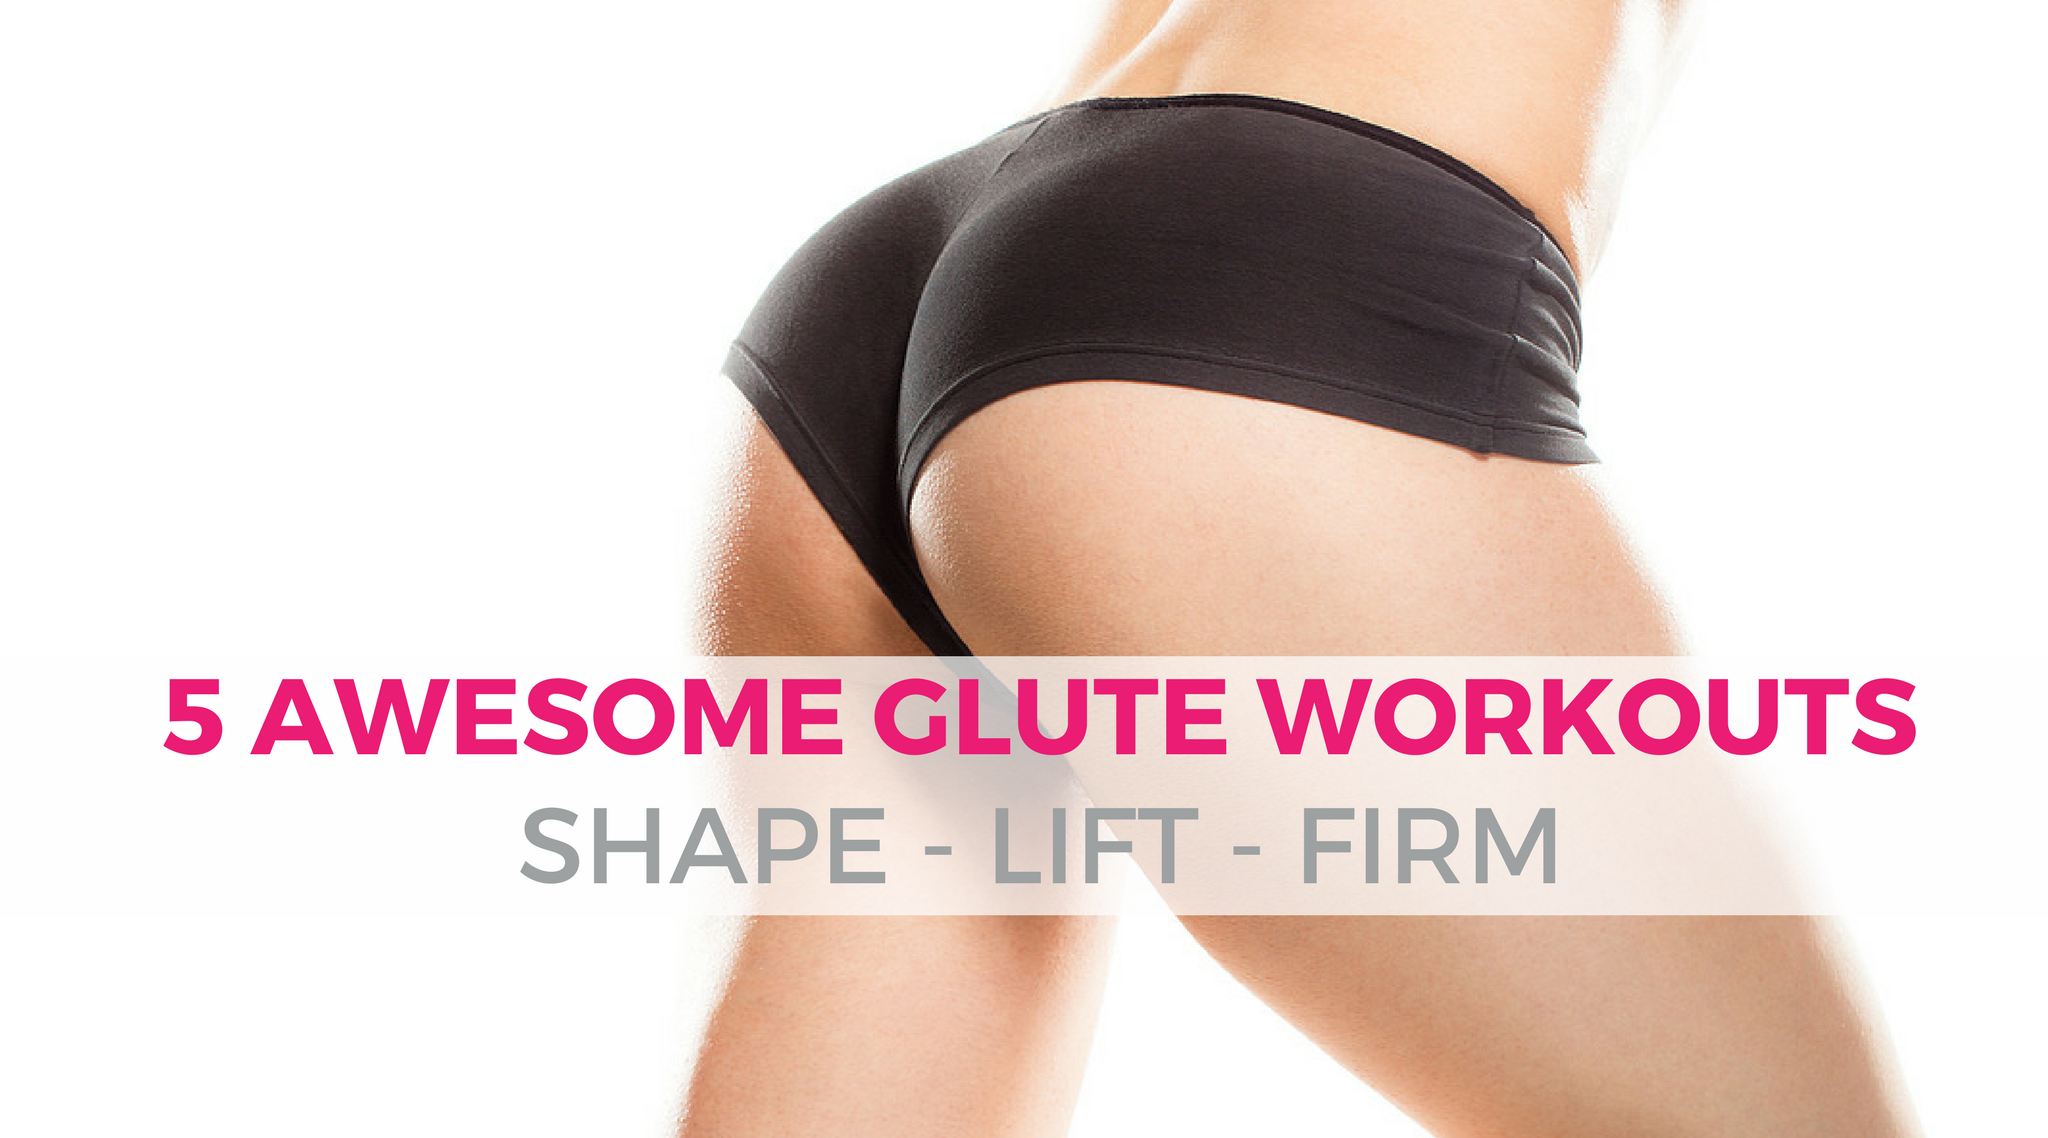 How to Get Your Best Booty: 5 Awesome Workouts for Women